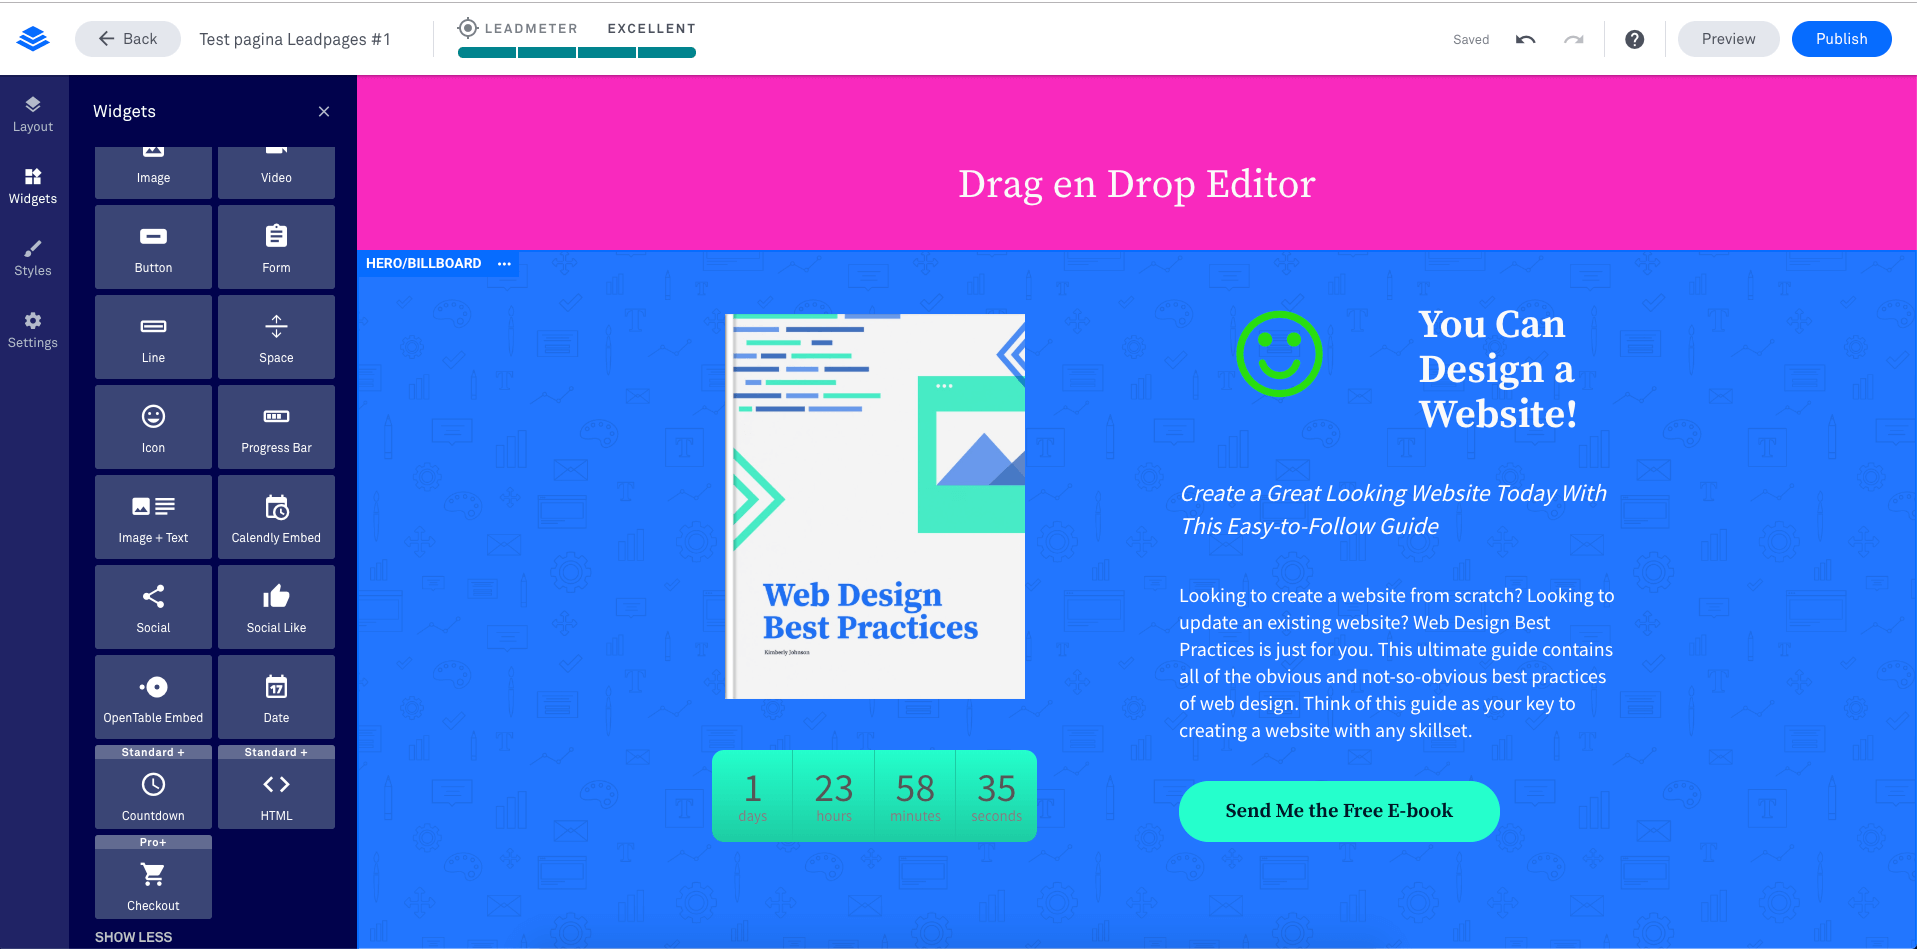 leadpages-drag-drop-edtor